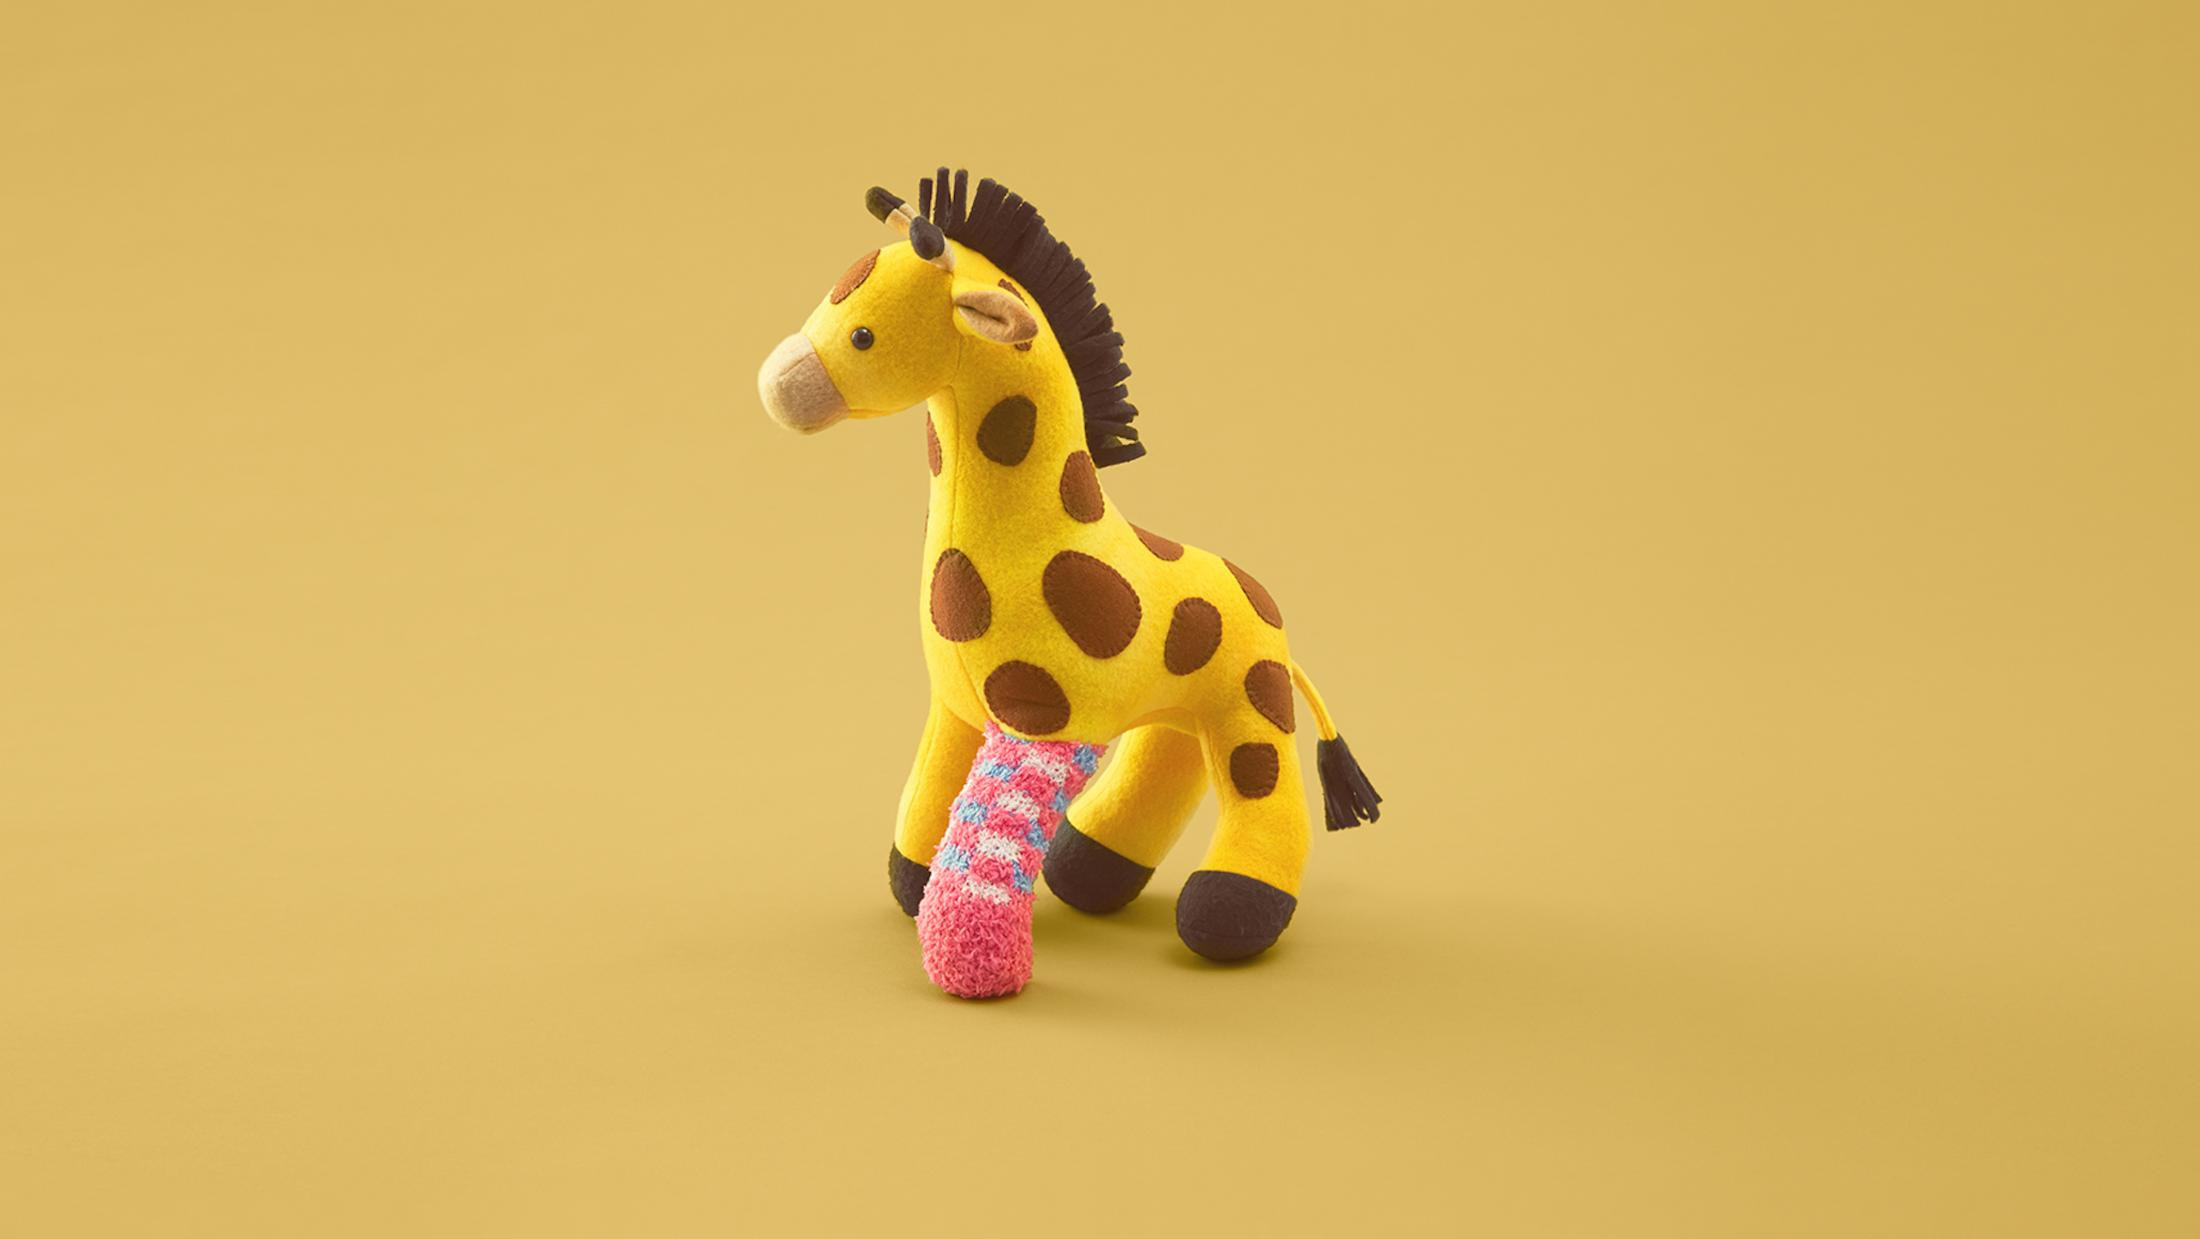 Brocken Used Toys : Second life toys transplants for children the